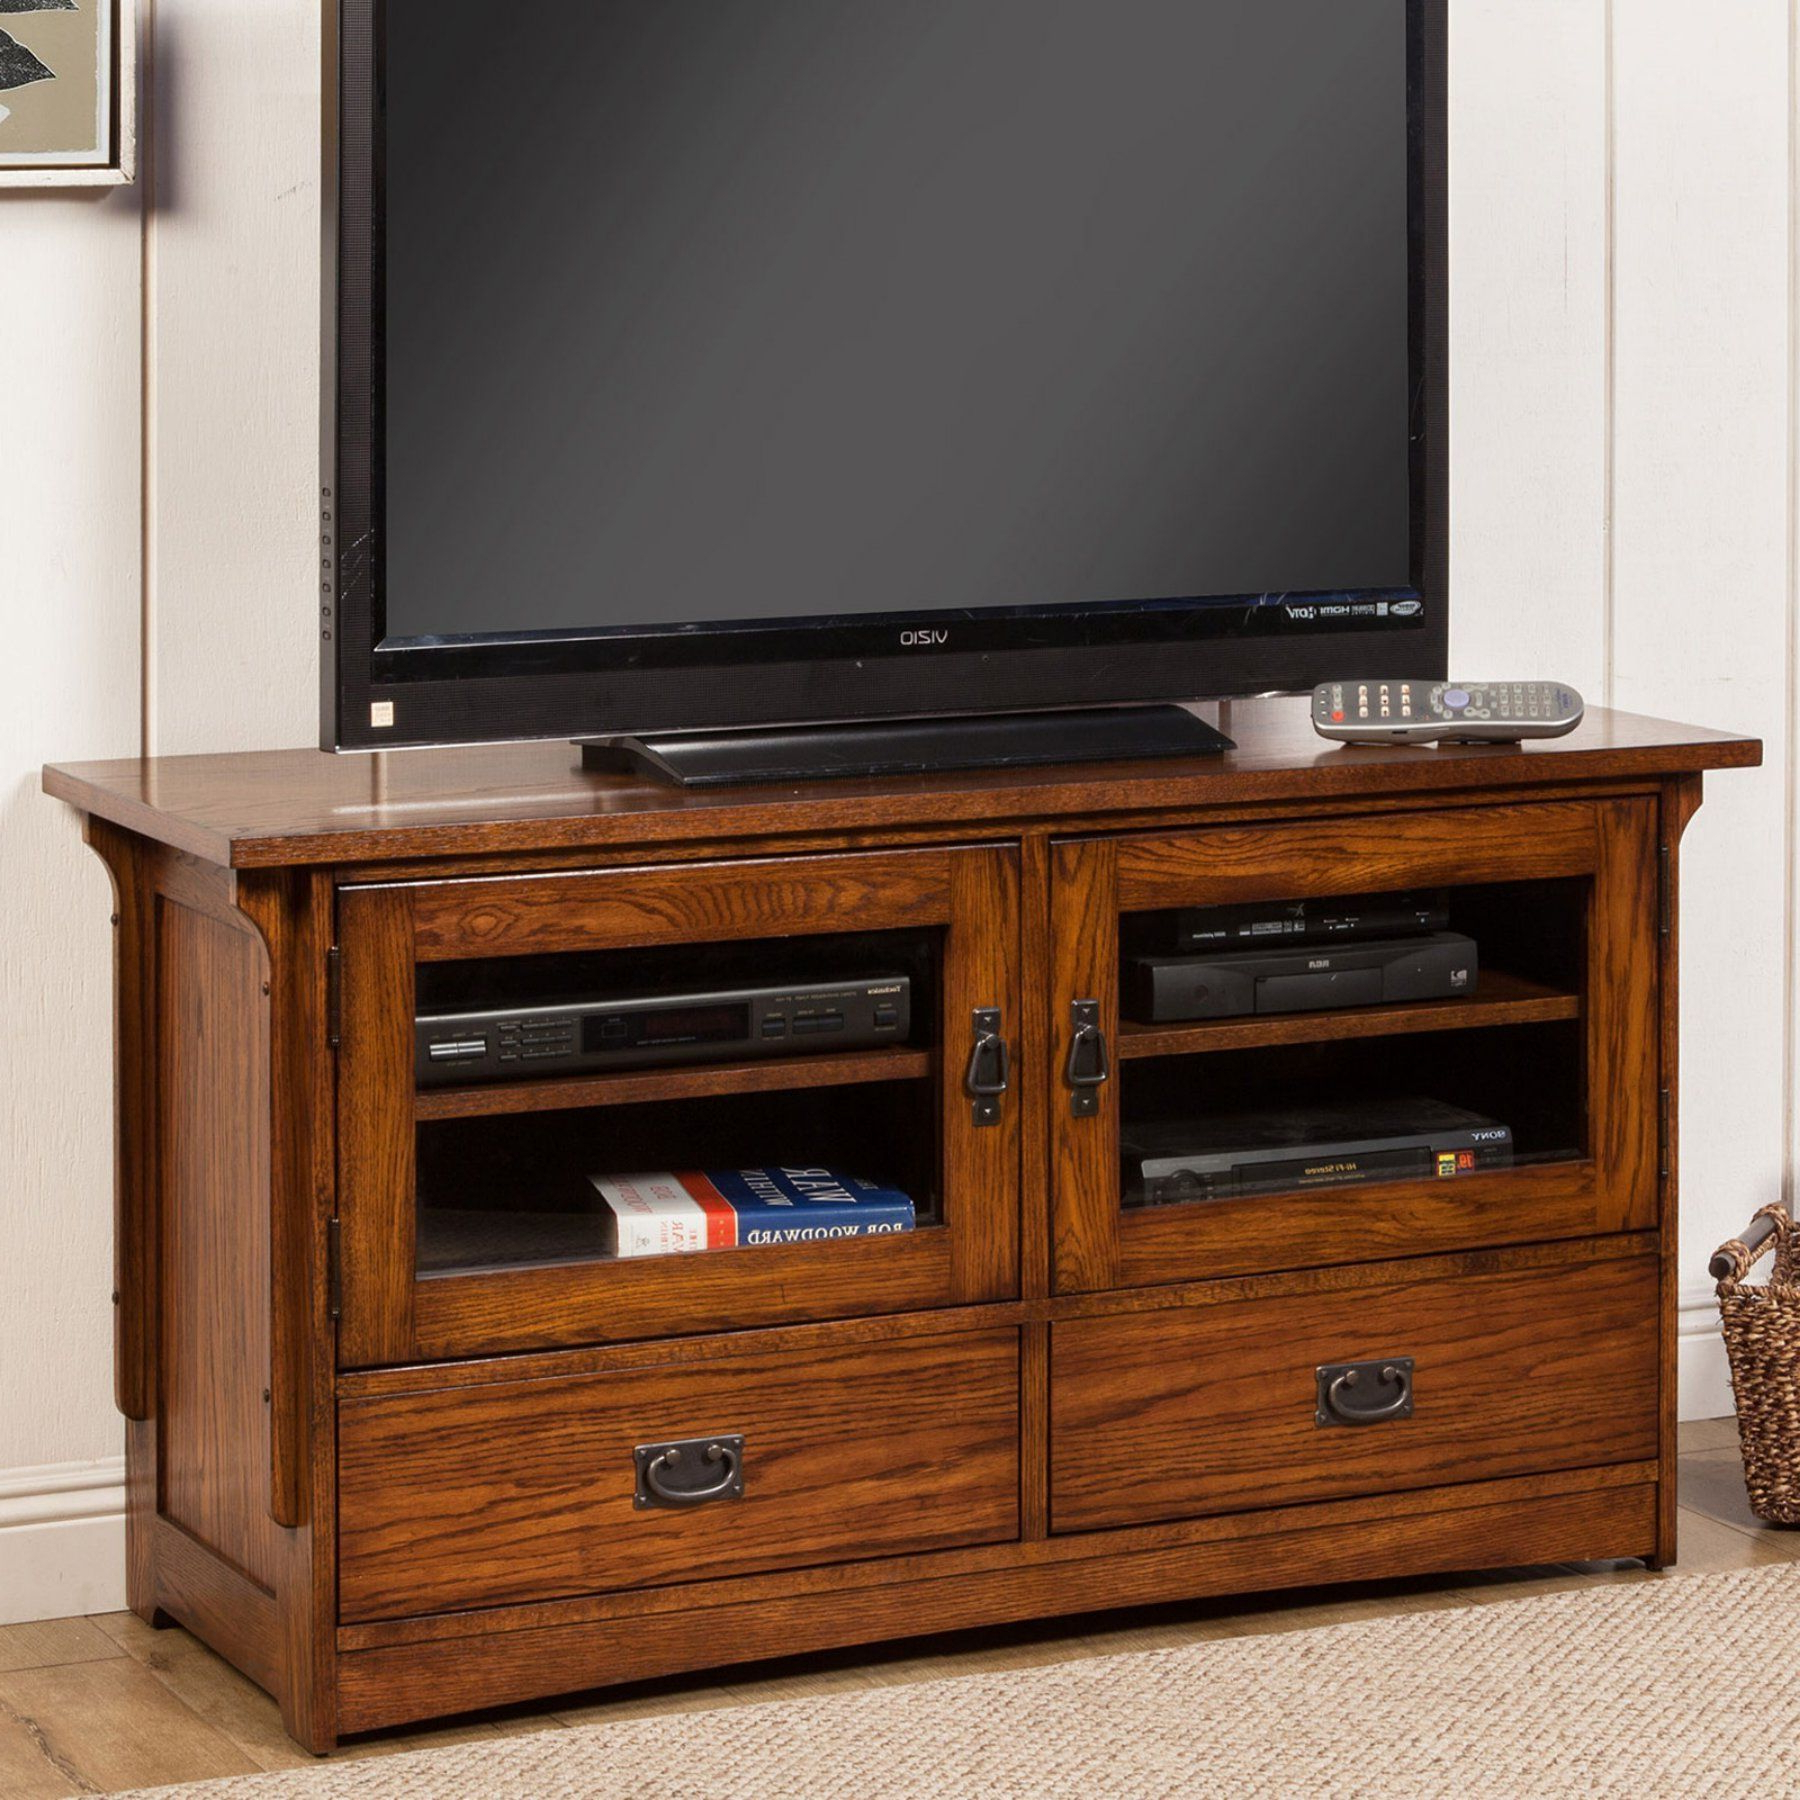 Medium Oak Tv Stands Flat Screen Furniture Of America Daimon Pertaining To Trendy Industrial Corner Tv Stands (View 16 of 20)